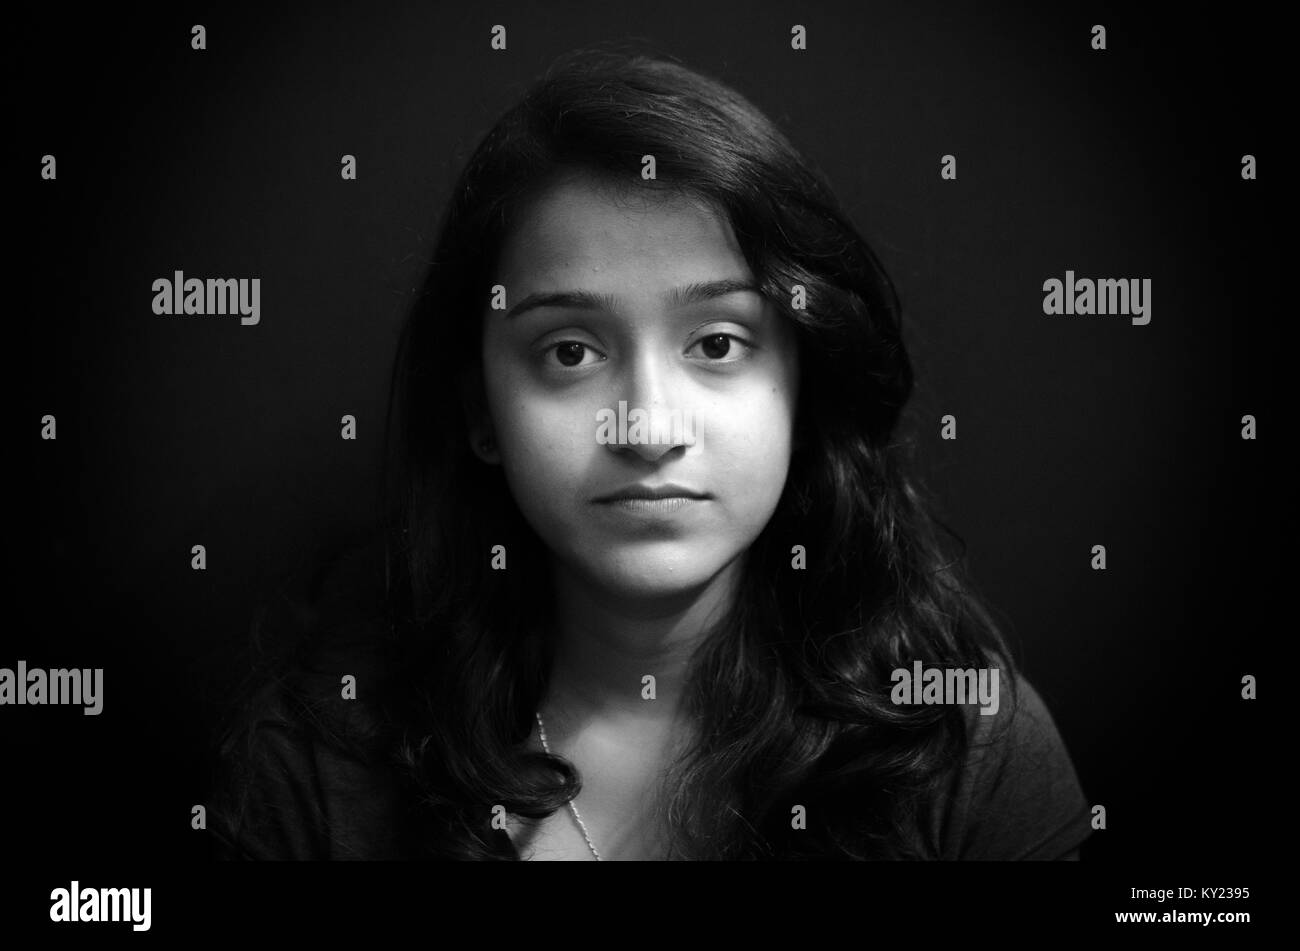 Black and white portrait of a cute chubby indian girl giving a blank stare over